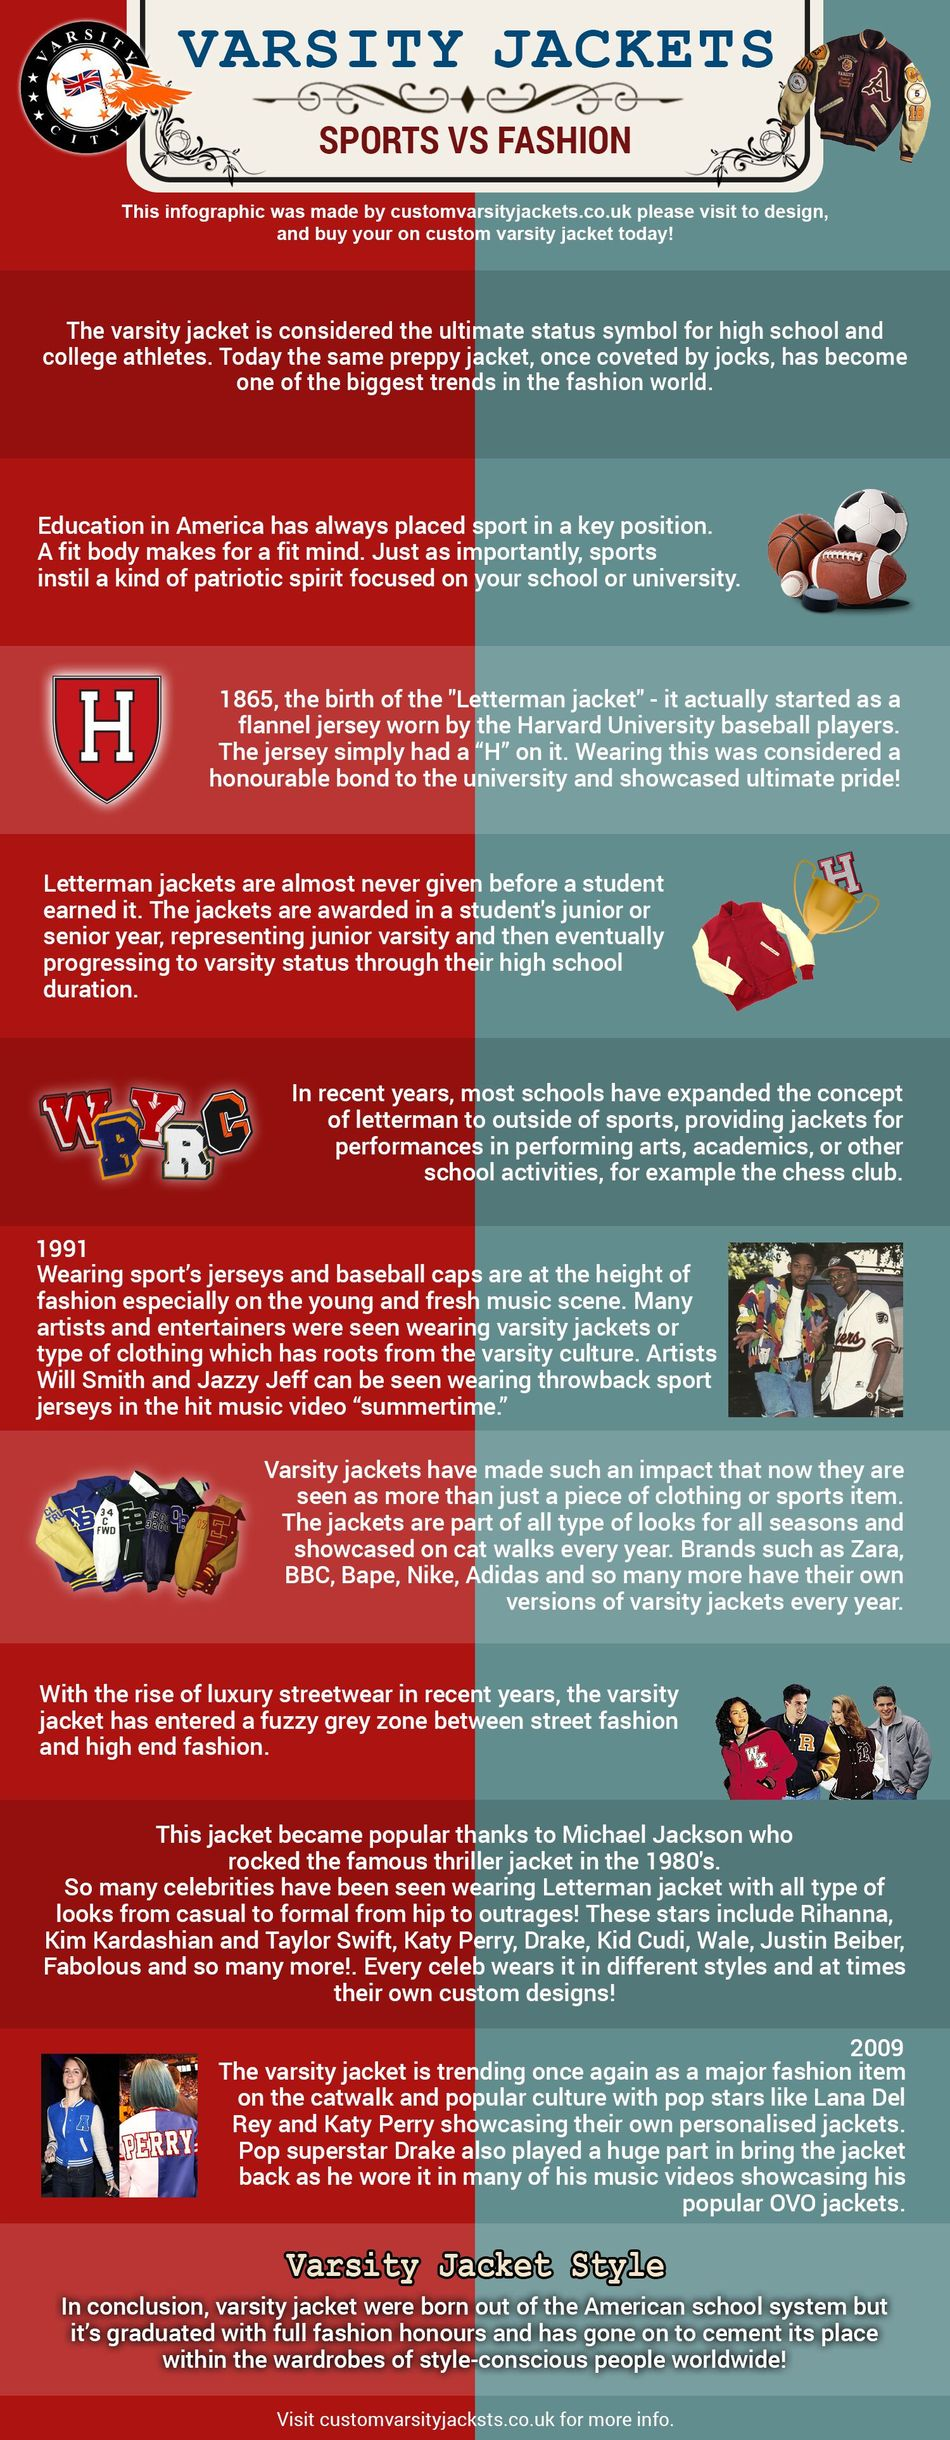 The Ultimate Status Symbol in Sports and Fashion: Varsity Jackets - Infographic